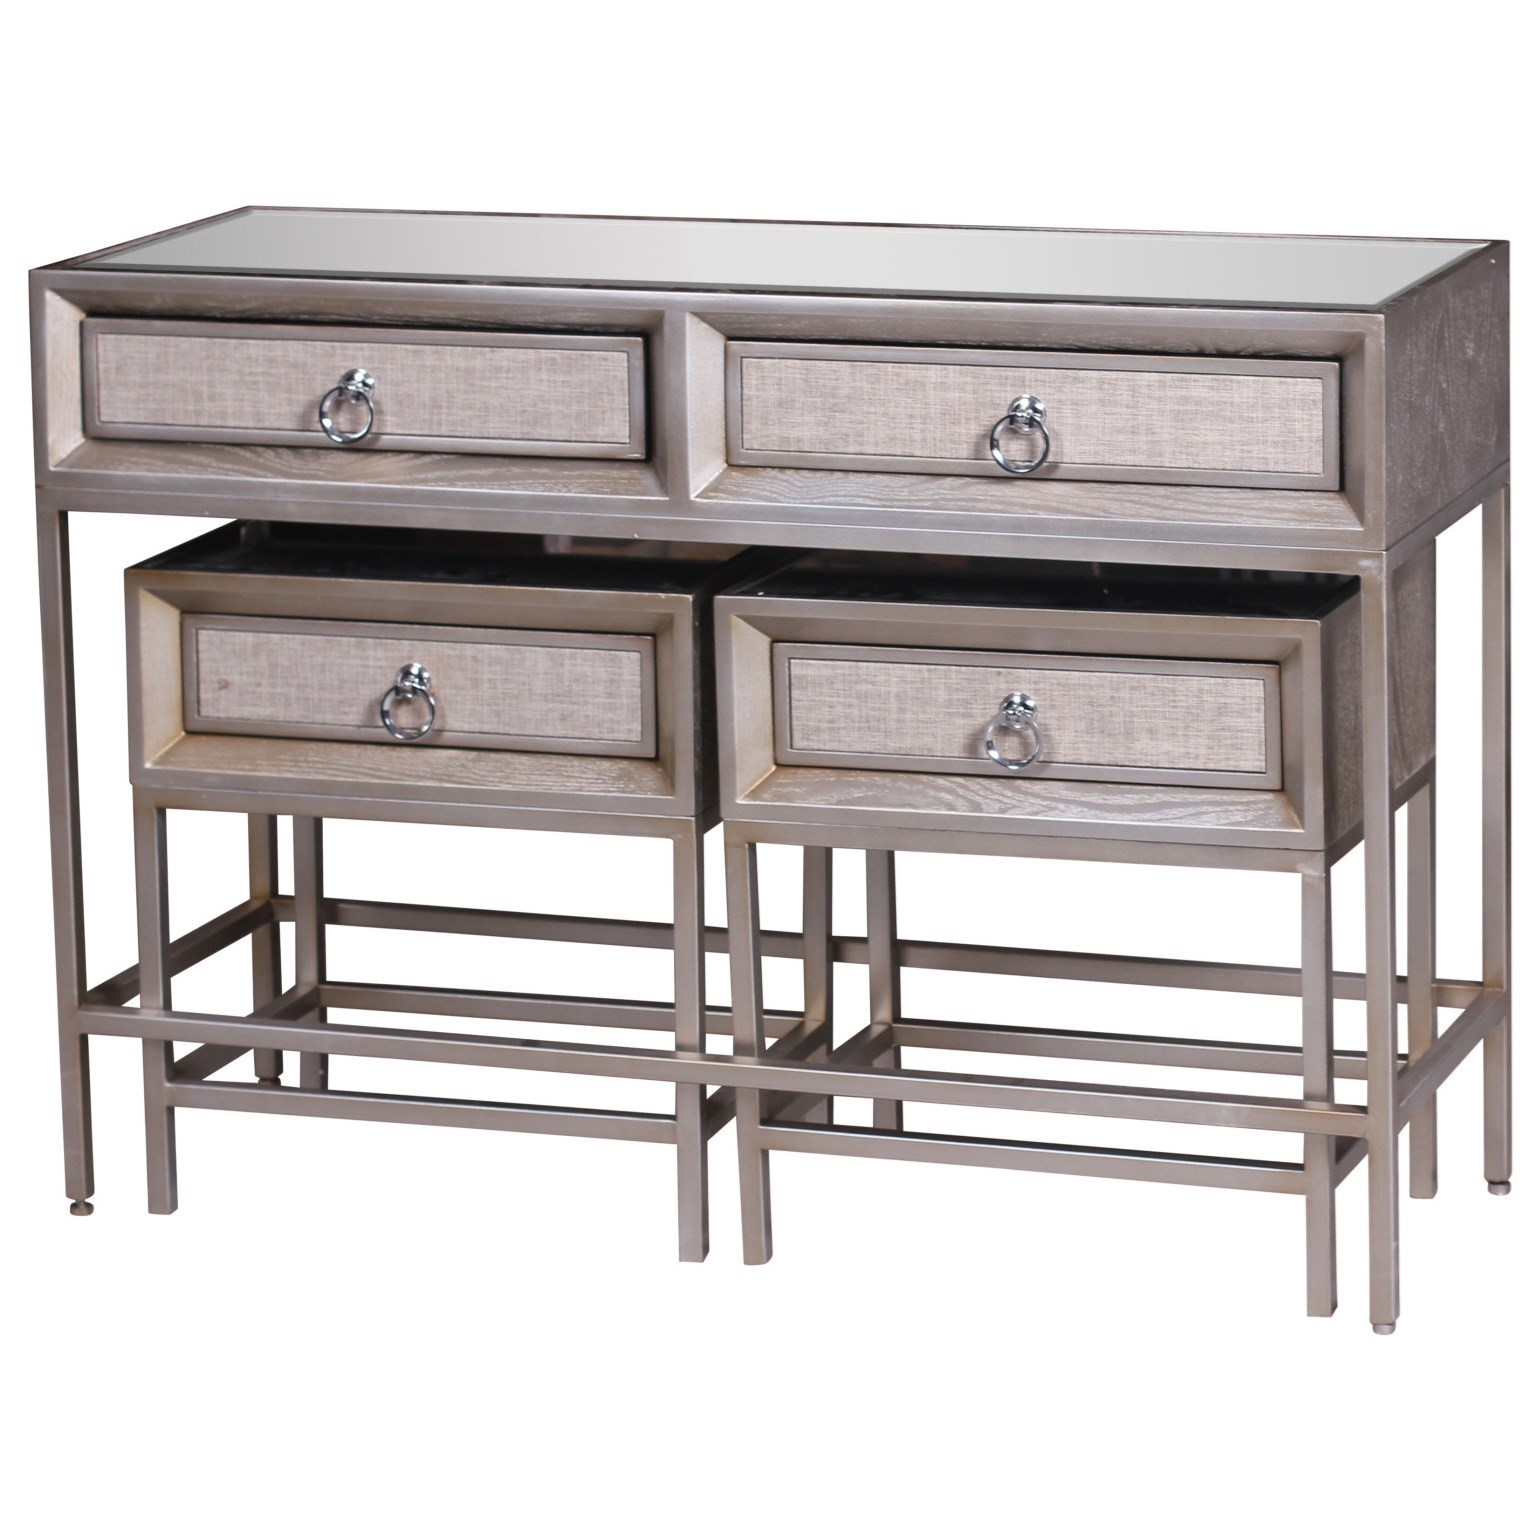 Accent Furniture Metal/Wood Mirror Consoles, Set of 3 by UMA Enterprises, Inc. at Wilcox Furniture